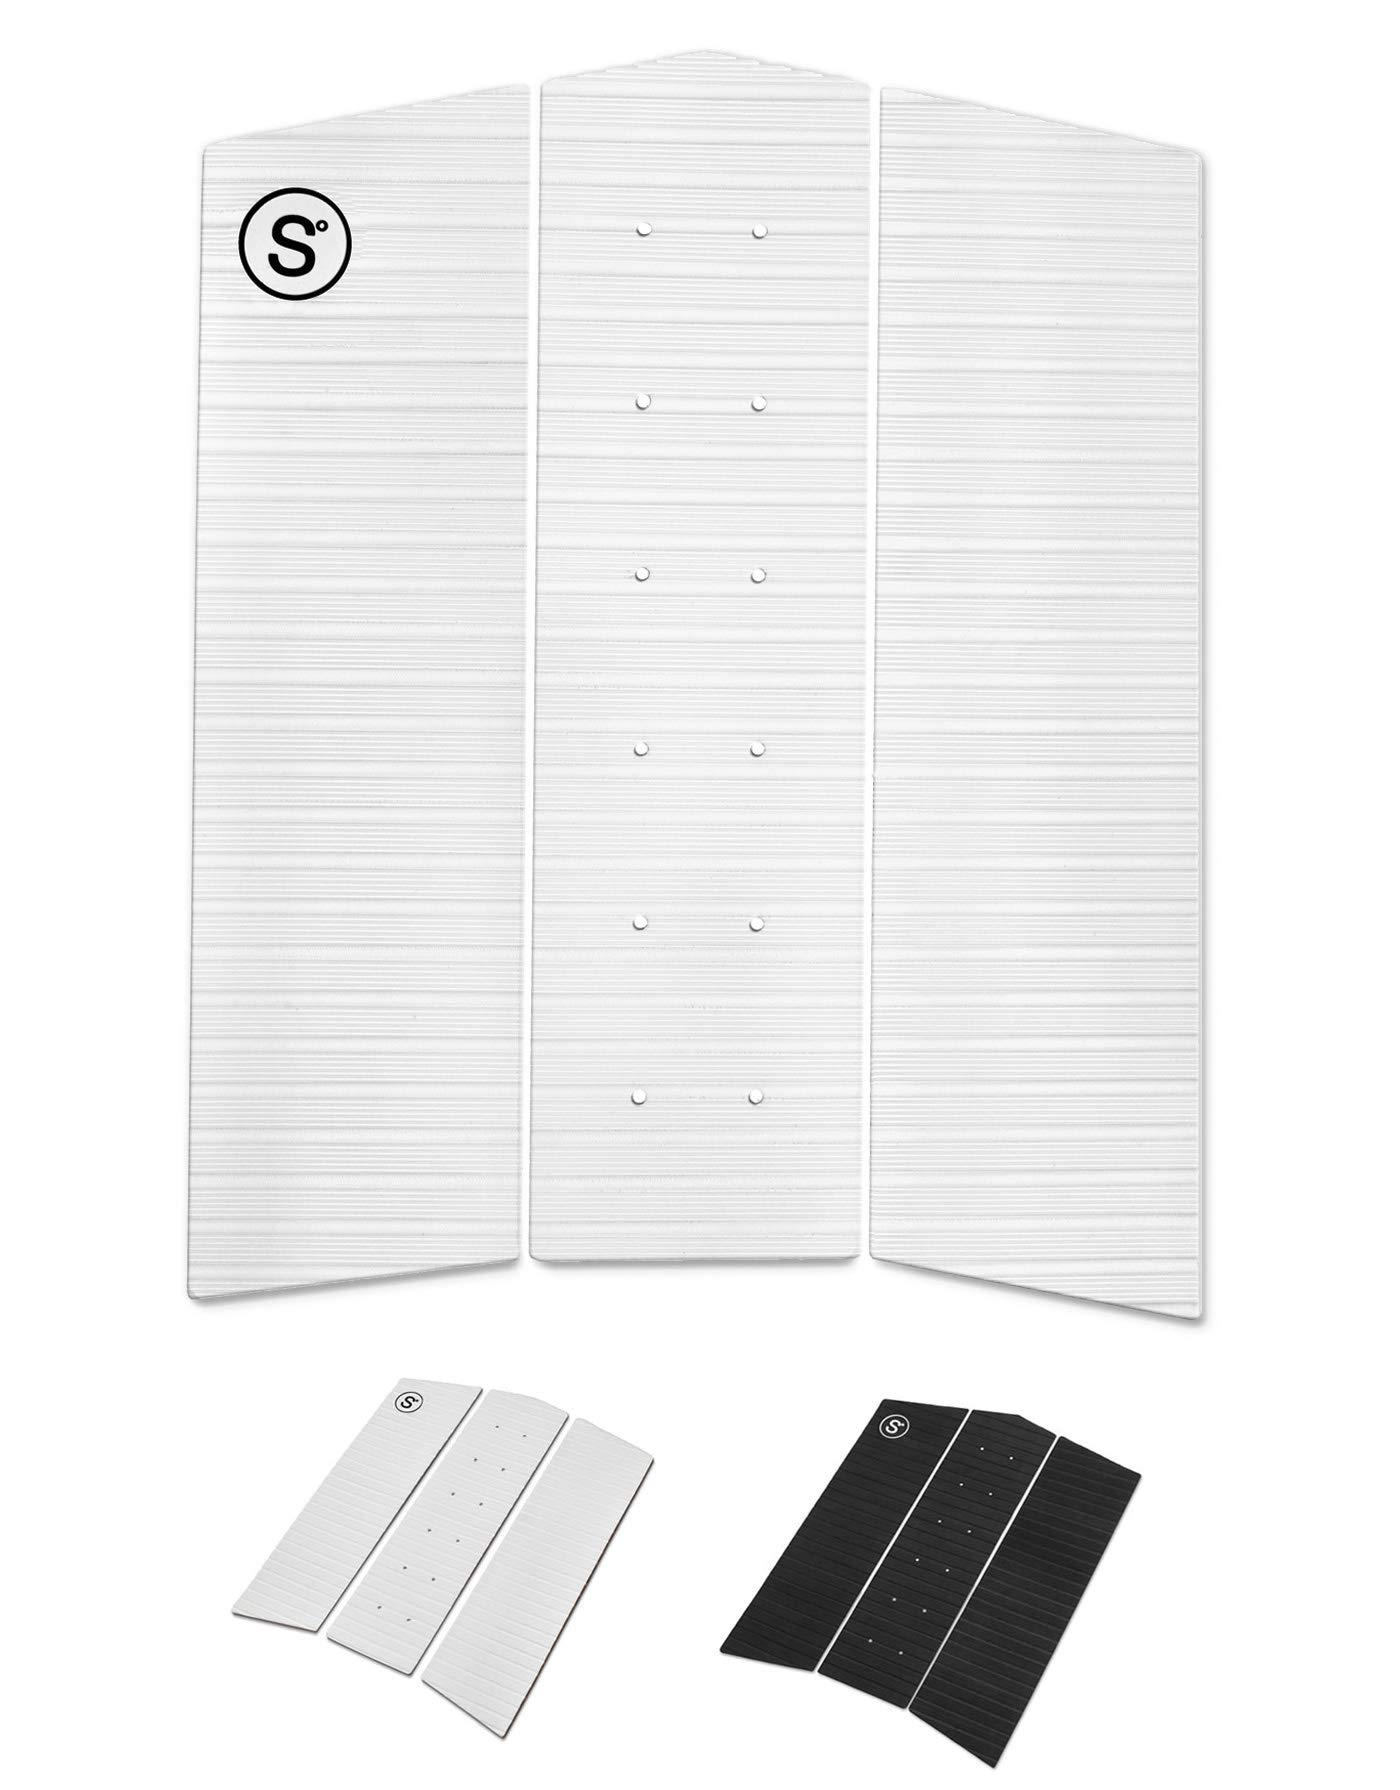 SYMPL Surfboard Front Traction Pad • 3 Pieces • Maximum Grip, 3M Adhesive for Surfboard, Skimboard, Longboard [ Choose Color ] (White) by SYMPL